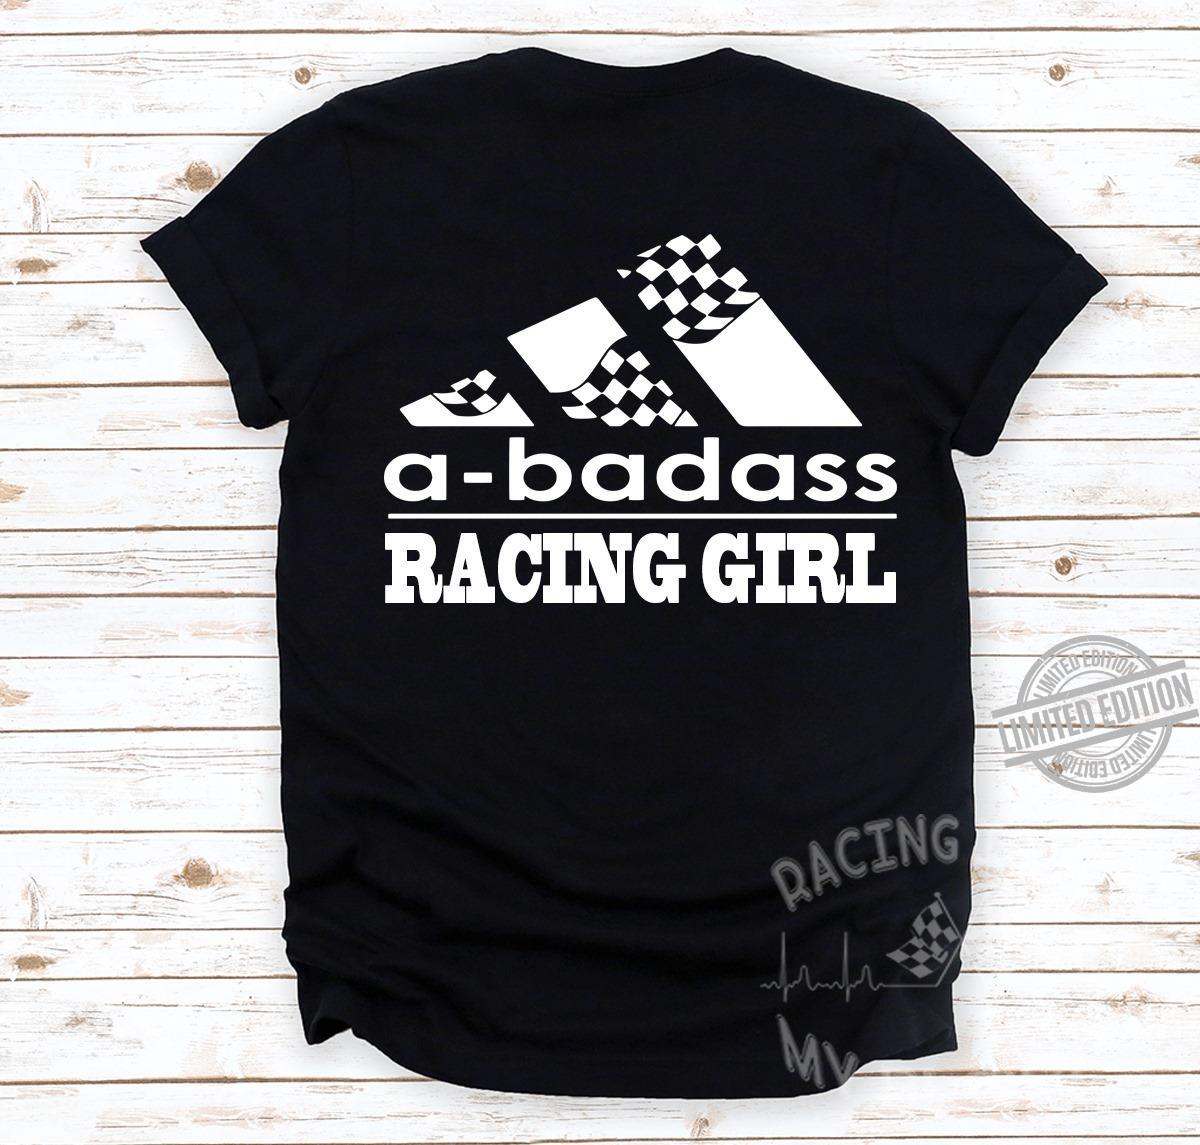 A-Badass Racing Girl Shirt